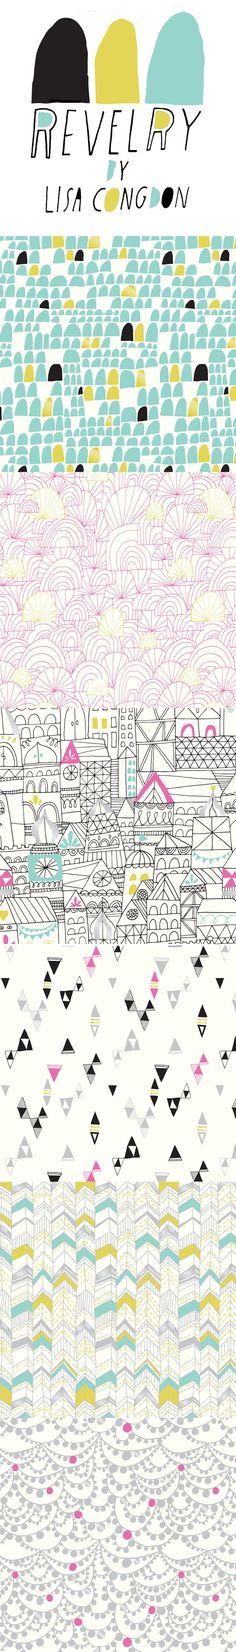 lisa congdon's Revelry collection for Cloud 9